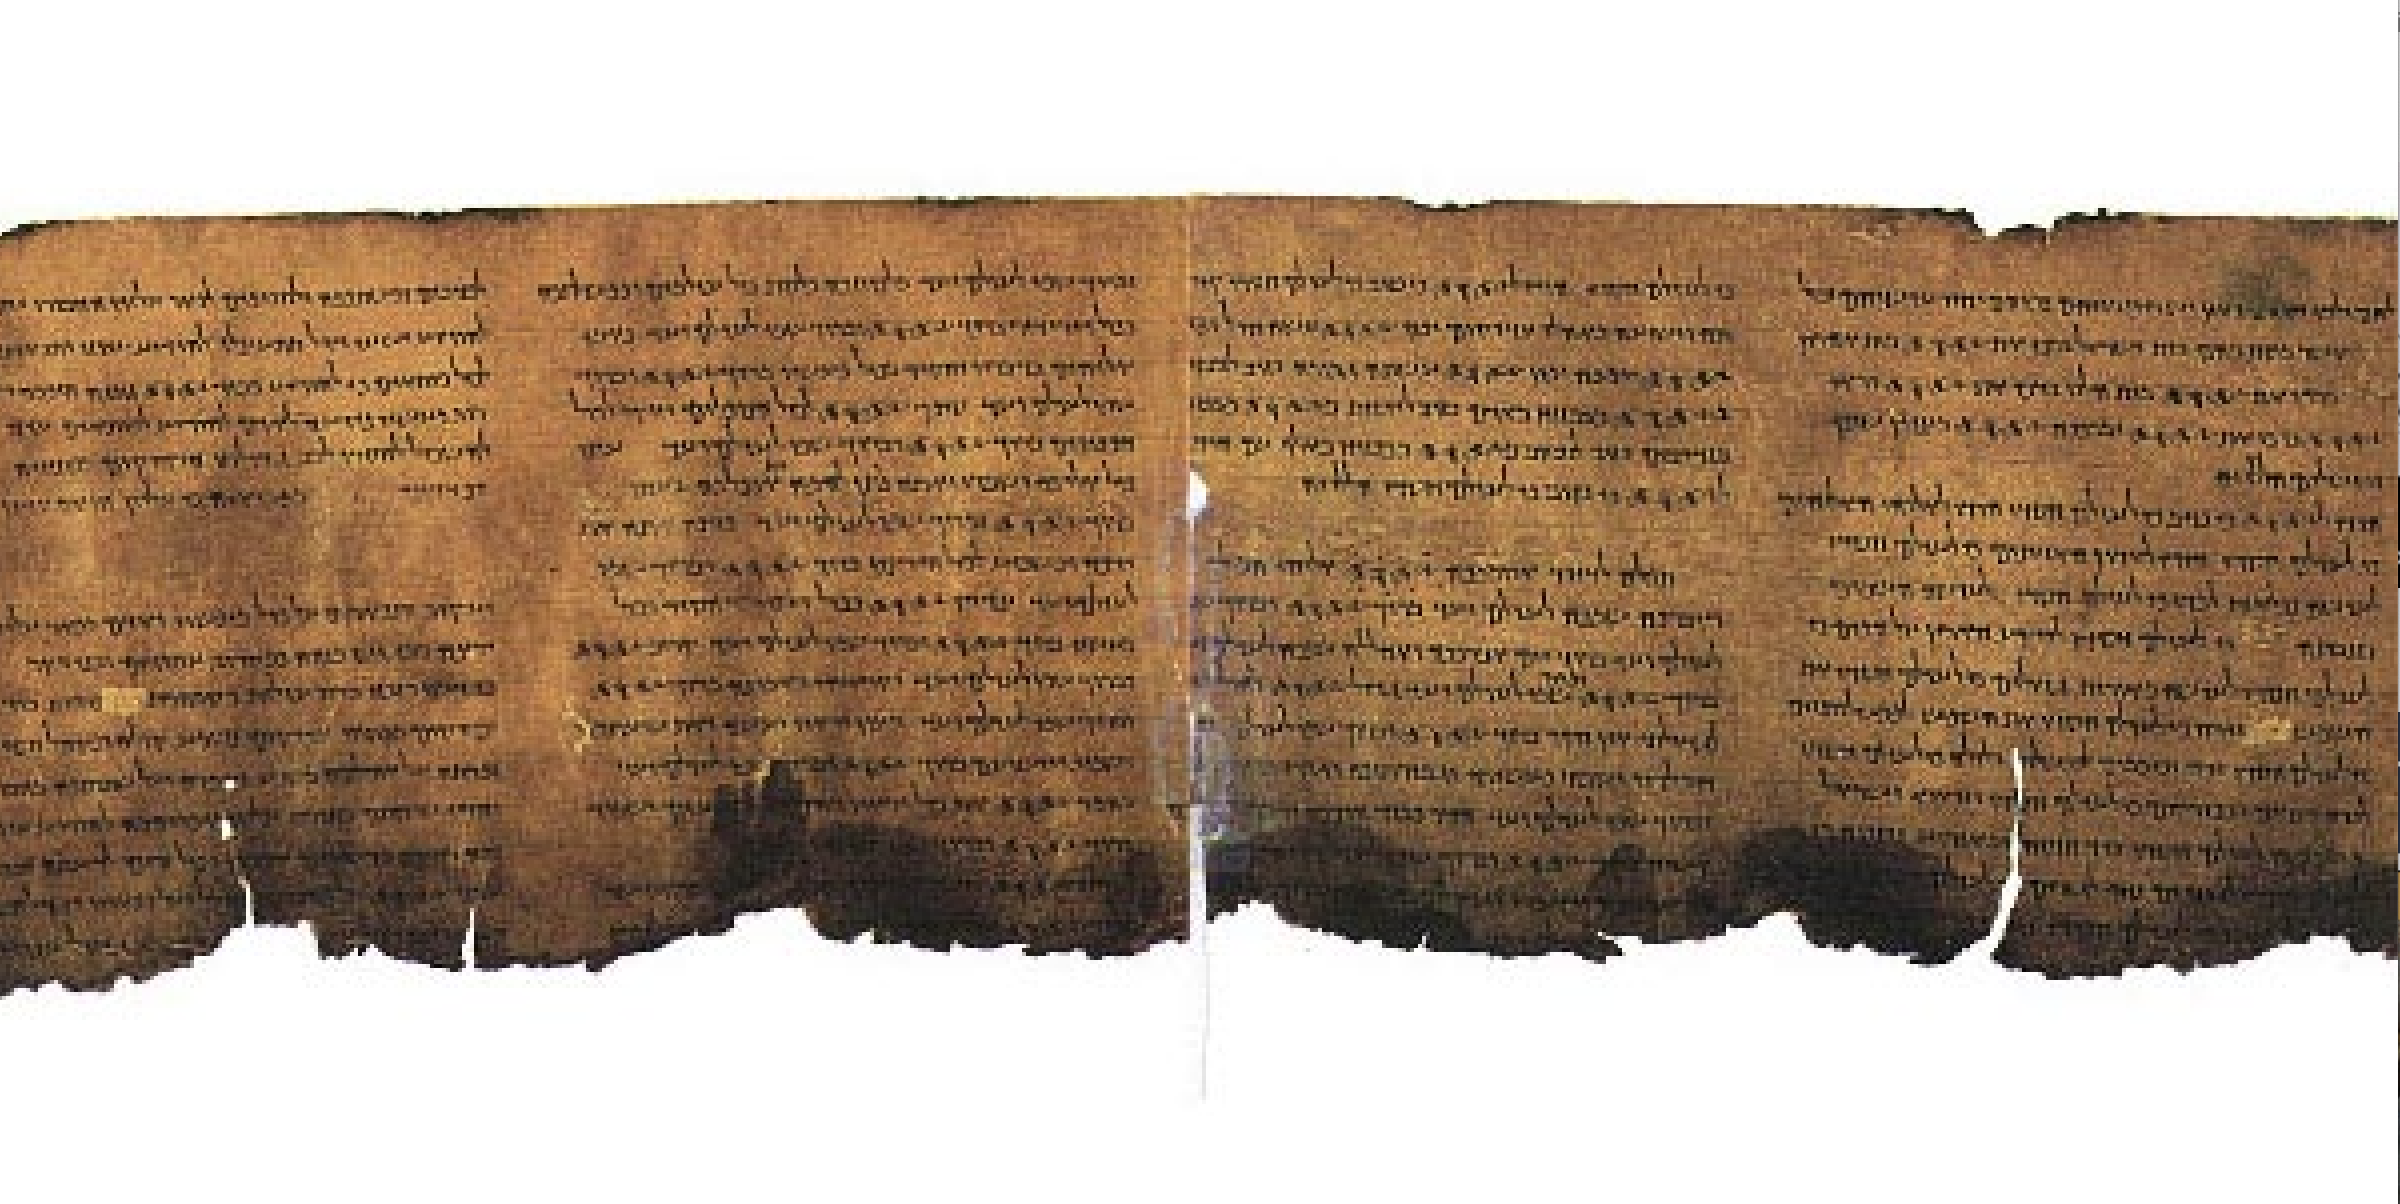 Israeli experts announce discovery of more Dead Sea scrolls